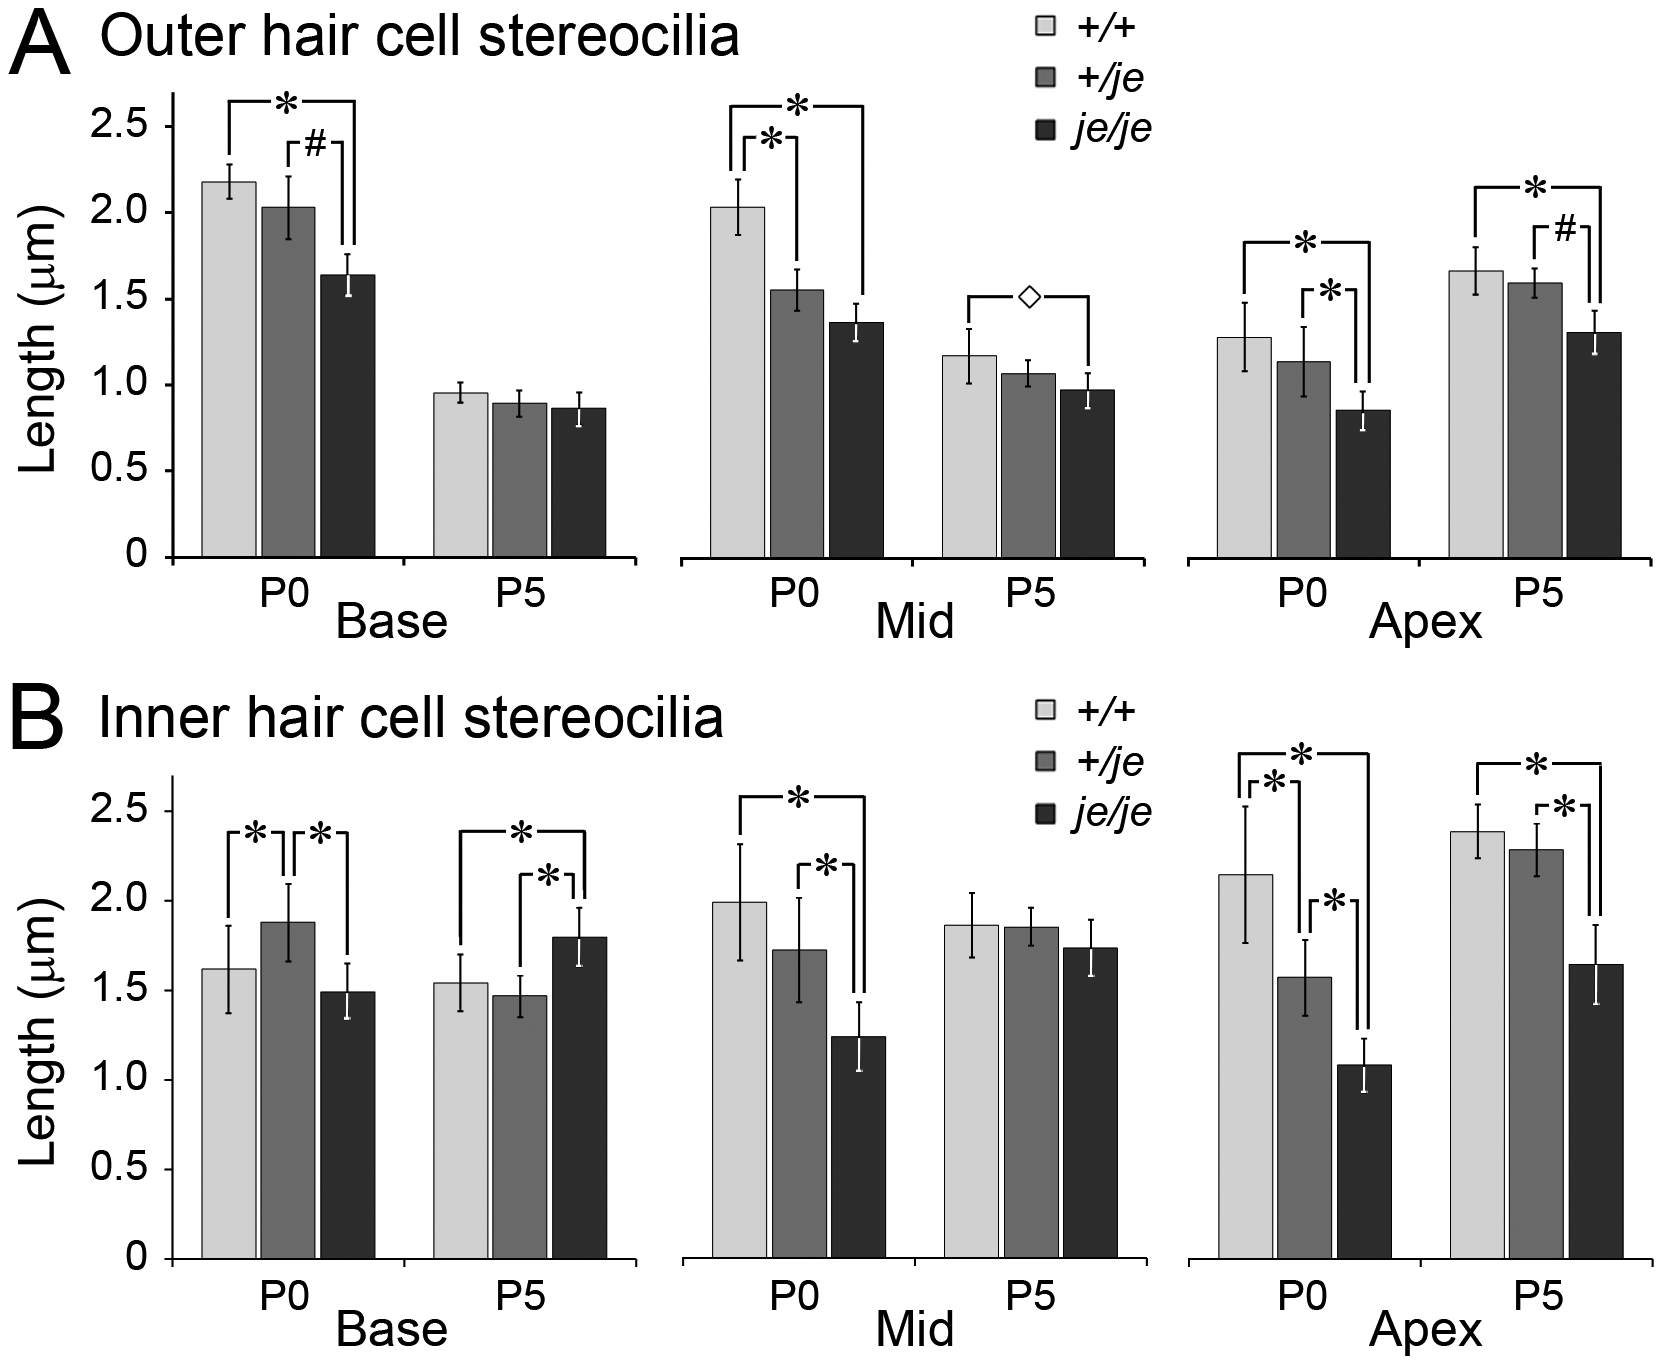 Stereociliary length measurements for cochlear hair cells in early postnatal <i>+/+</i>, <i>+/je</i>, and <i>je/je</i> mice.